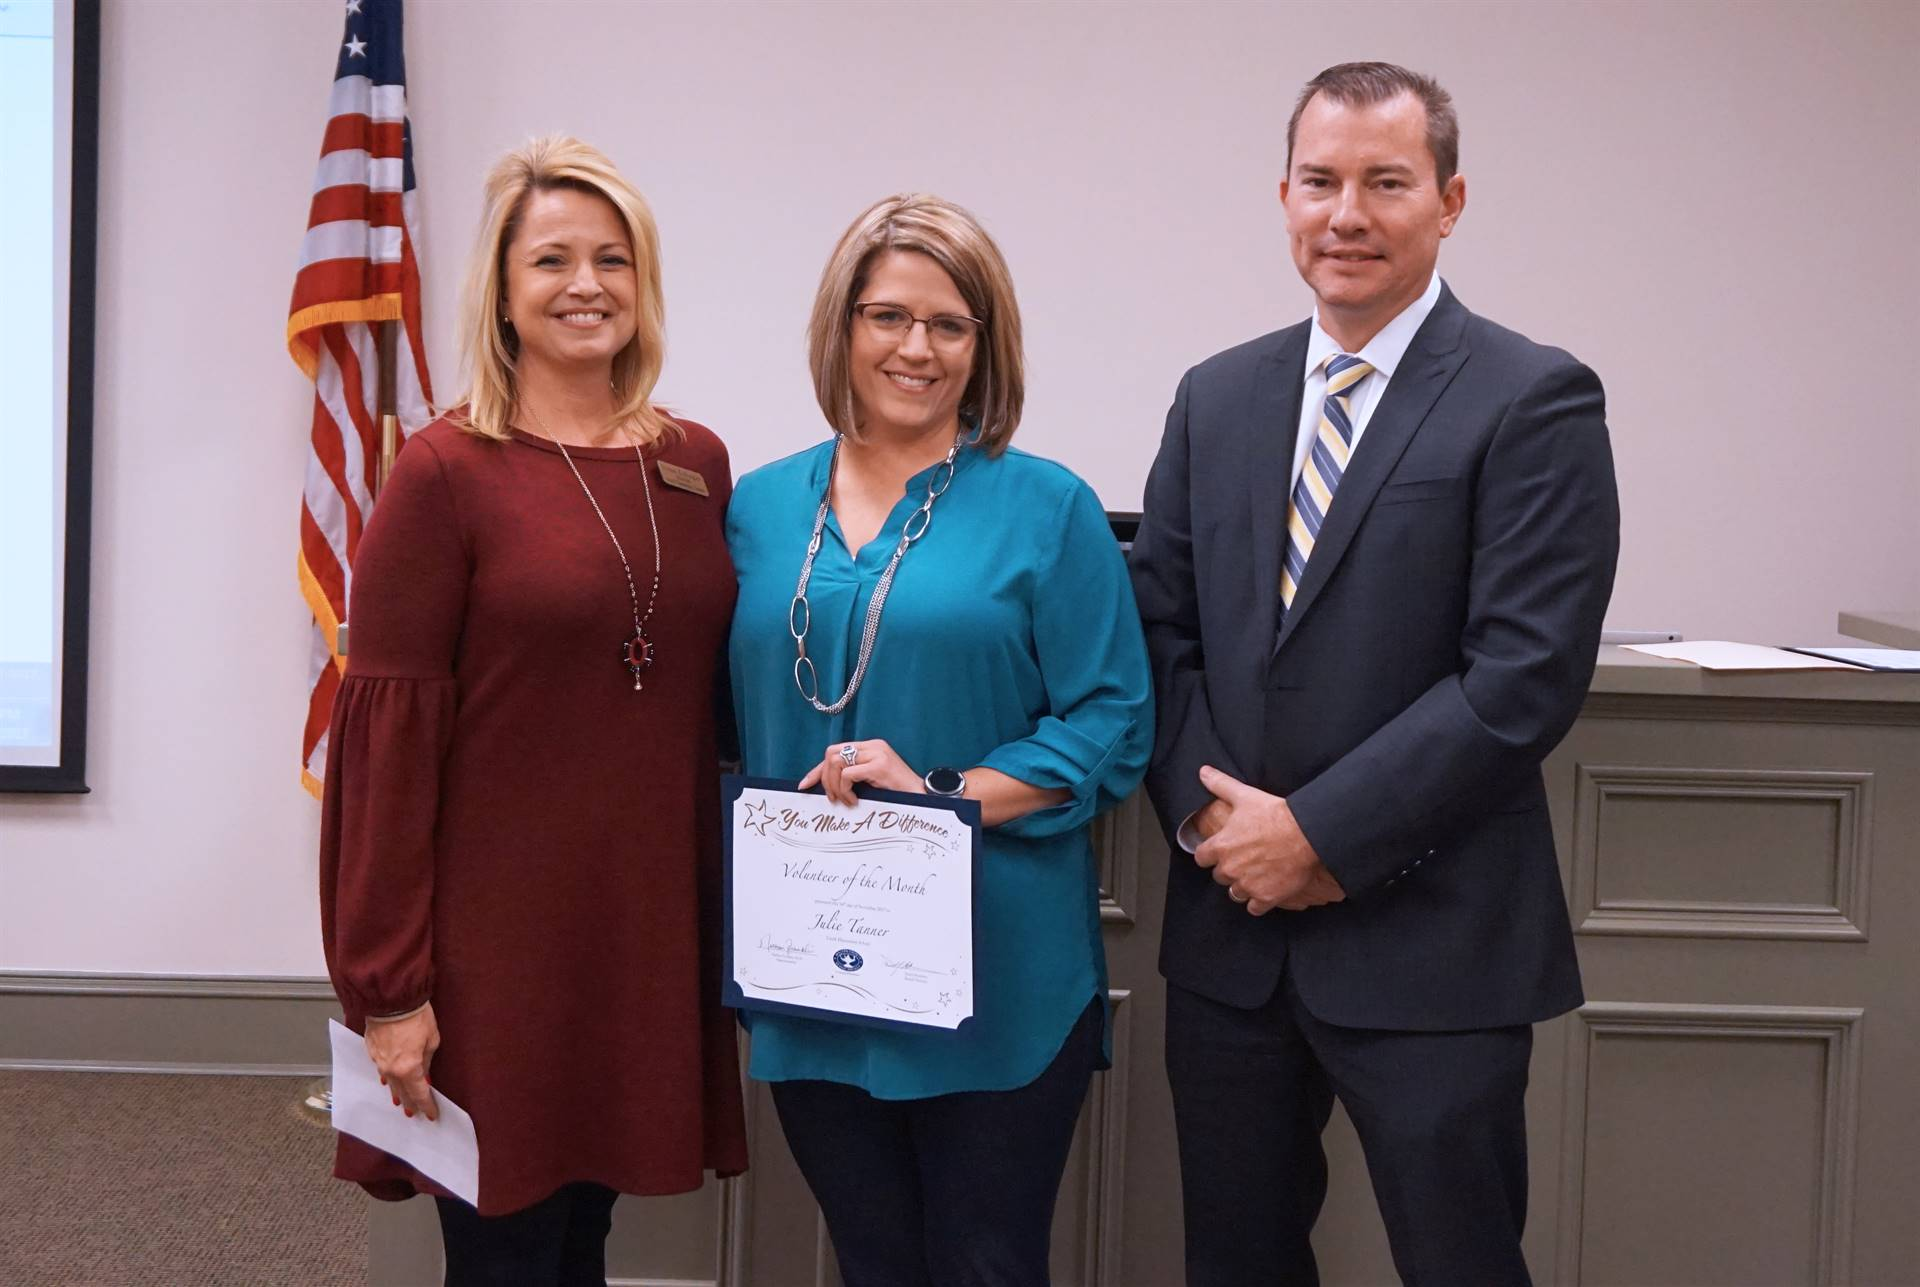 Principal, Volunteer of the Month and Superintendent